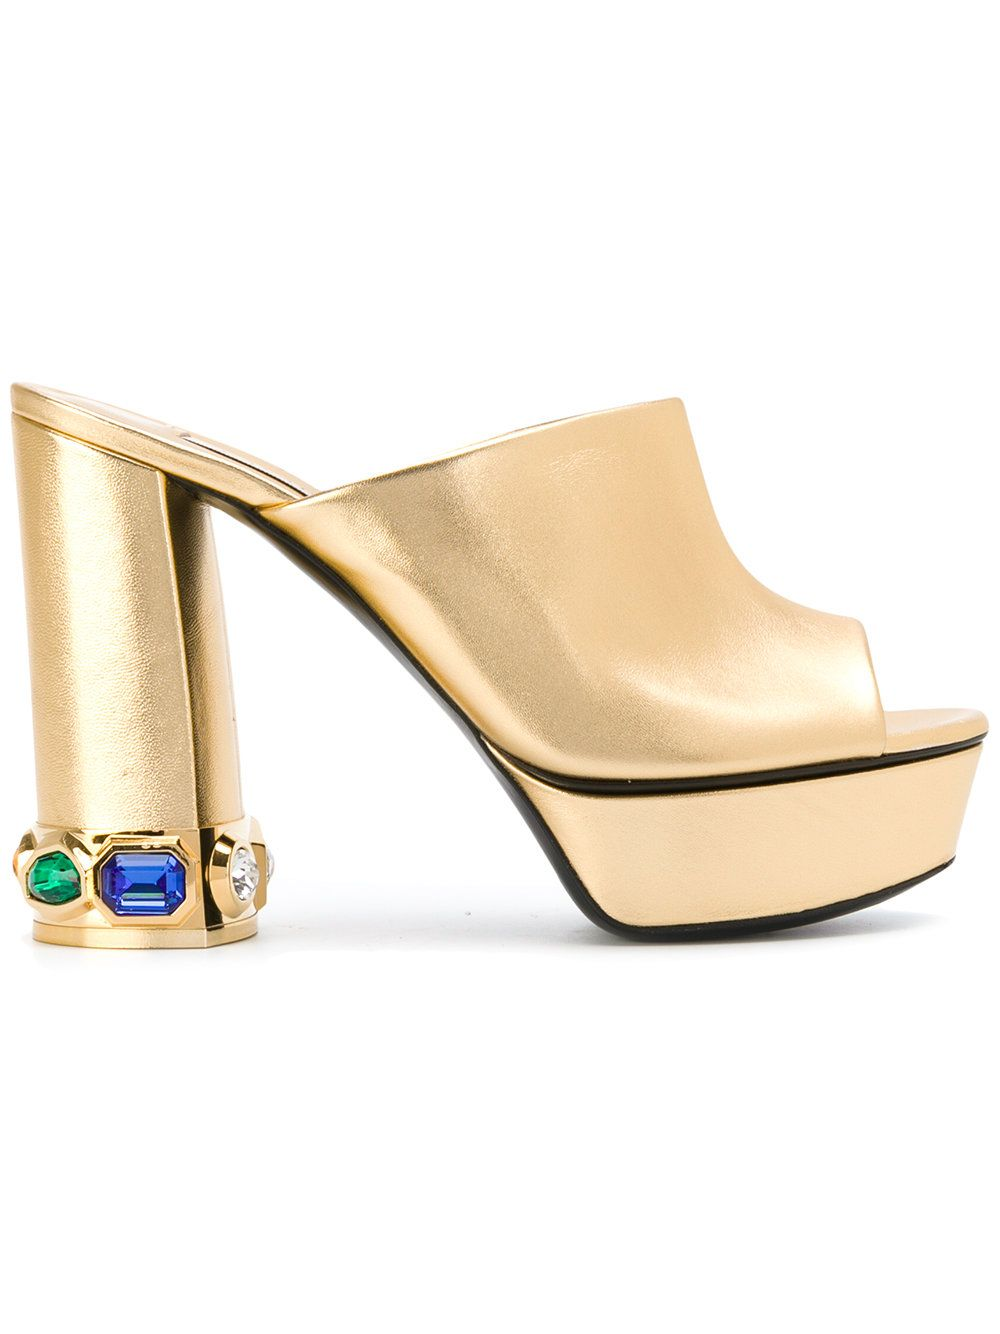 Designers Casadei Open Toe Platform Gold Mules For Women Selling Well